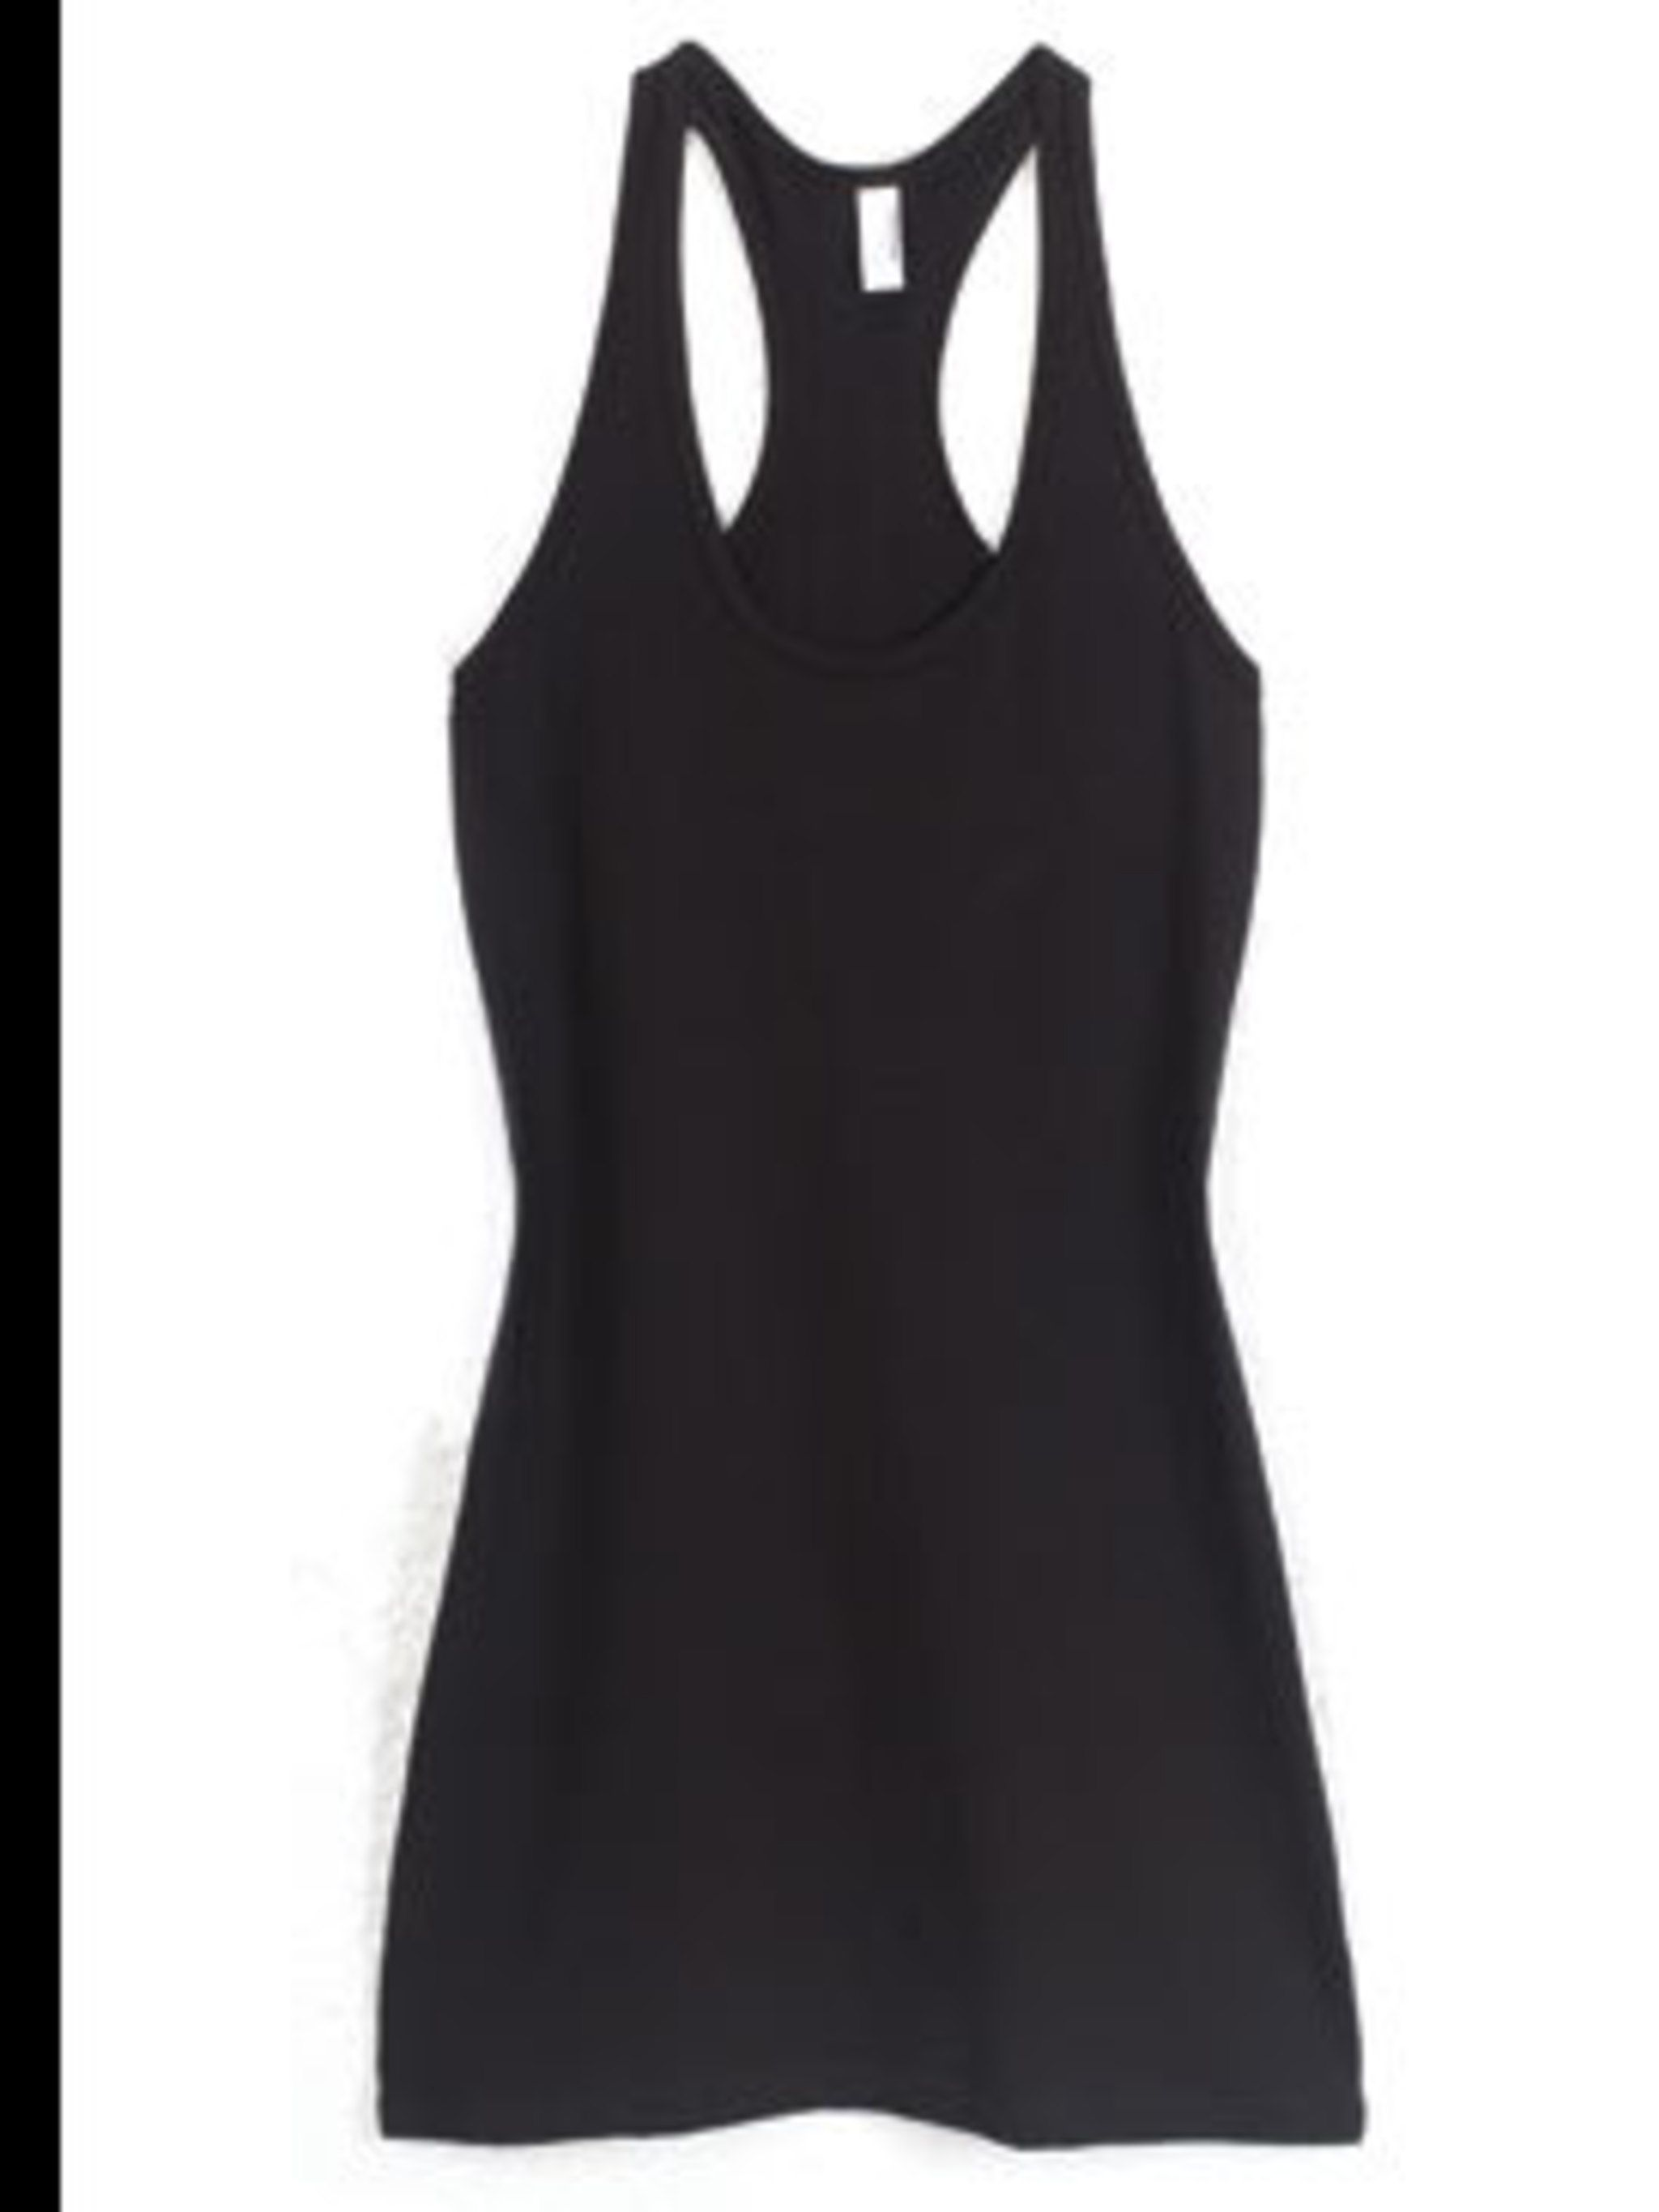 """<p>Black racer back t-shirt dress, £20, by <a href=""""http://store.americanapparel.co.uk/2335.html"""">American Apparel</a></p>"""